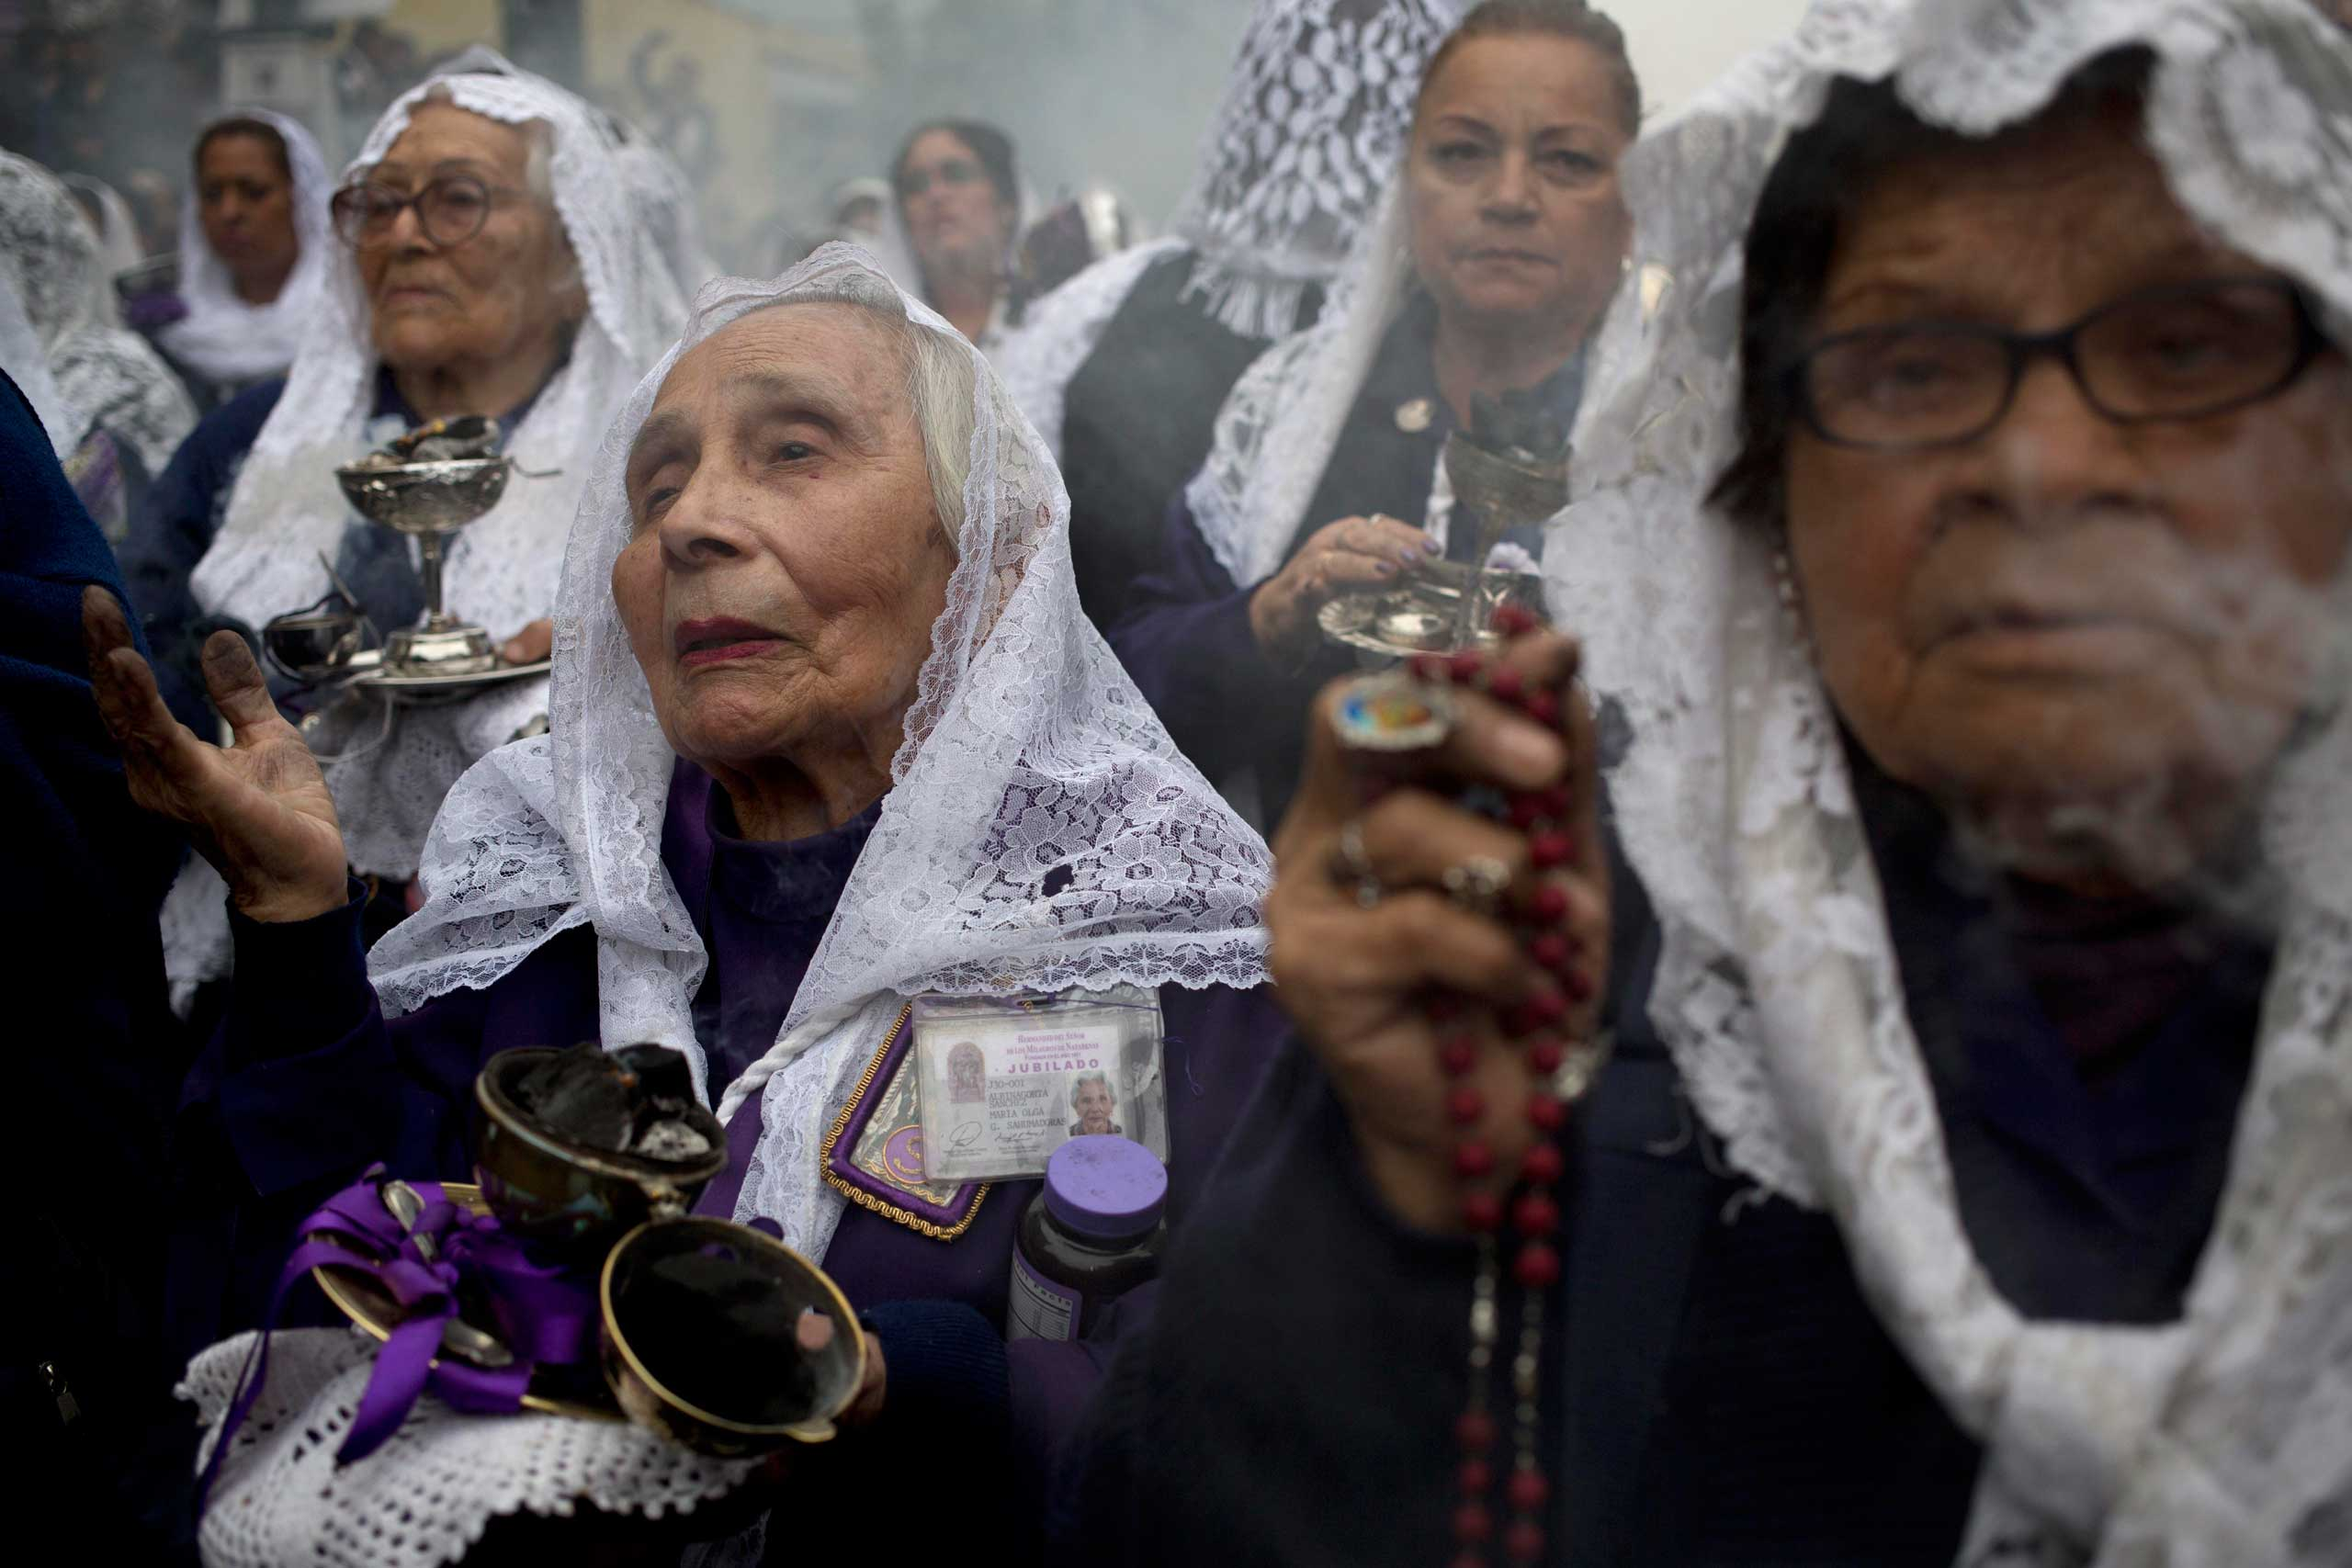 Oct. 18, 2014. Women burn incense as the image of the Lord of Miracles, the capital city's patron saint, is carried behind them in Lima, Peru. The Lord of Miracles is a 17th century mural of Jesus Christ, and the procession is the Andean country's largest Catholic event.